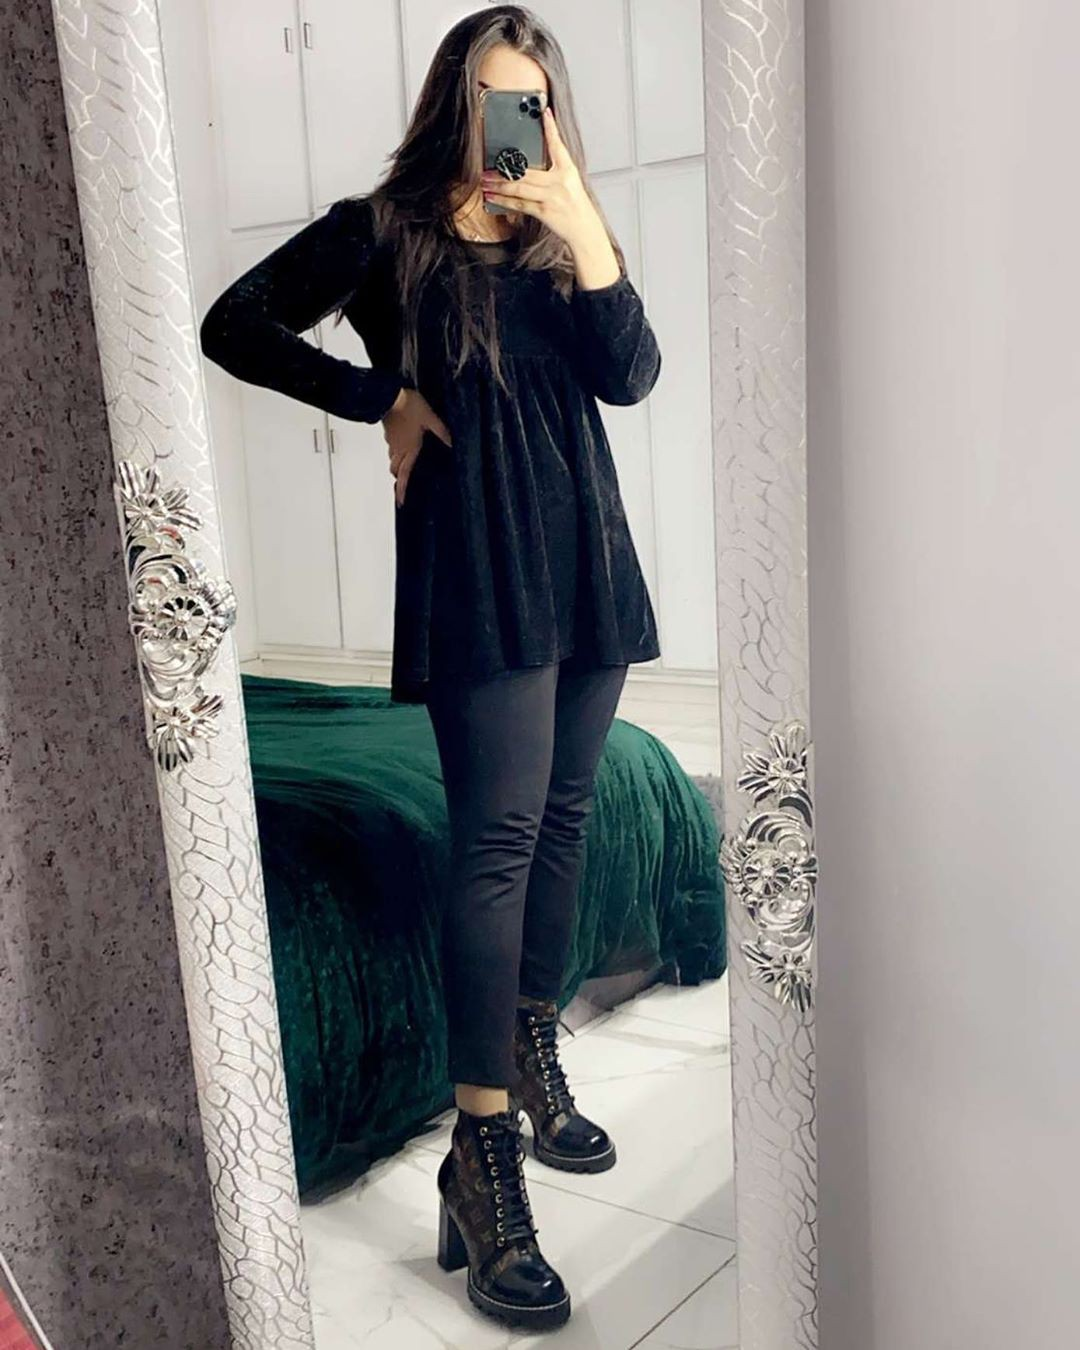 black style outfit with leggings, tights, hot legs picture